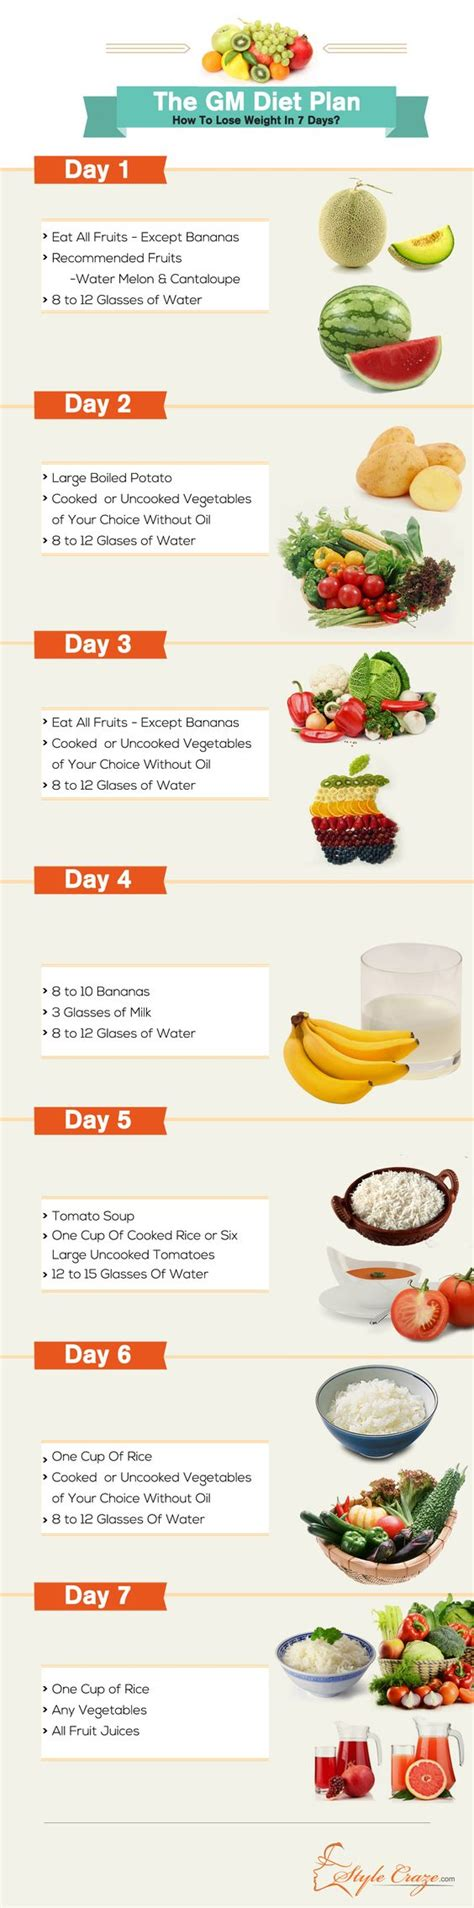 Week Detox Diet Plan by The Gm Diet Plan How To Lose Weight In Just 7 Days